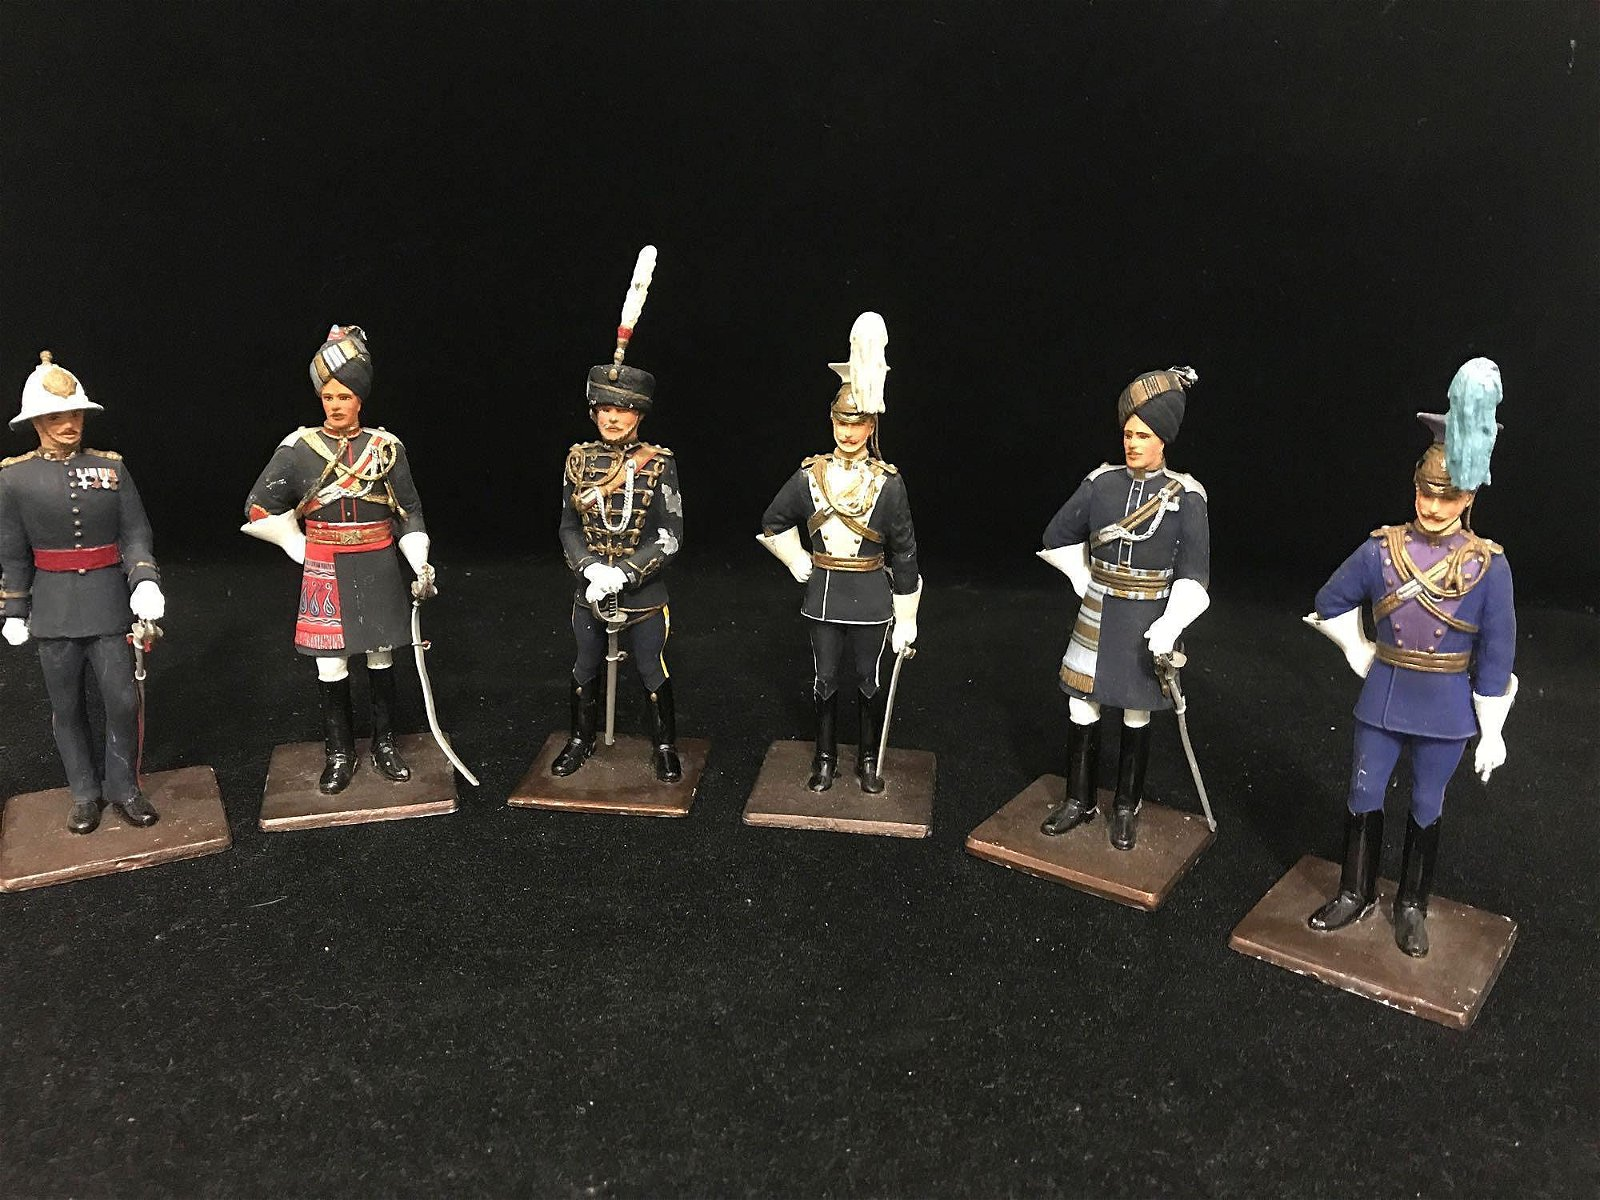 6 Sentry Box Officers